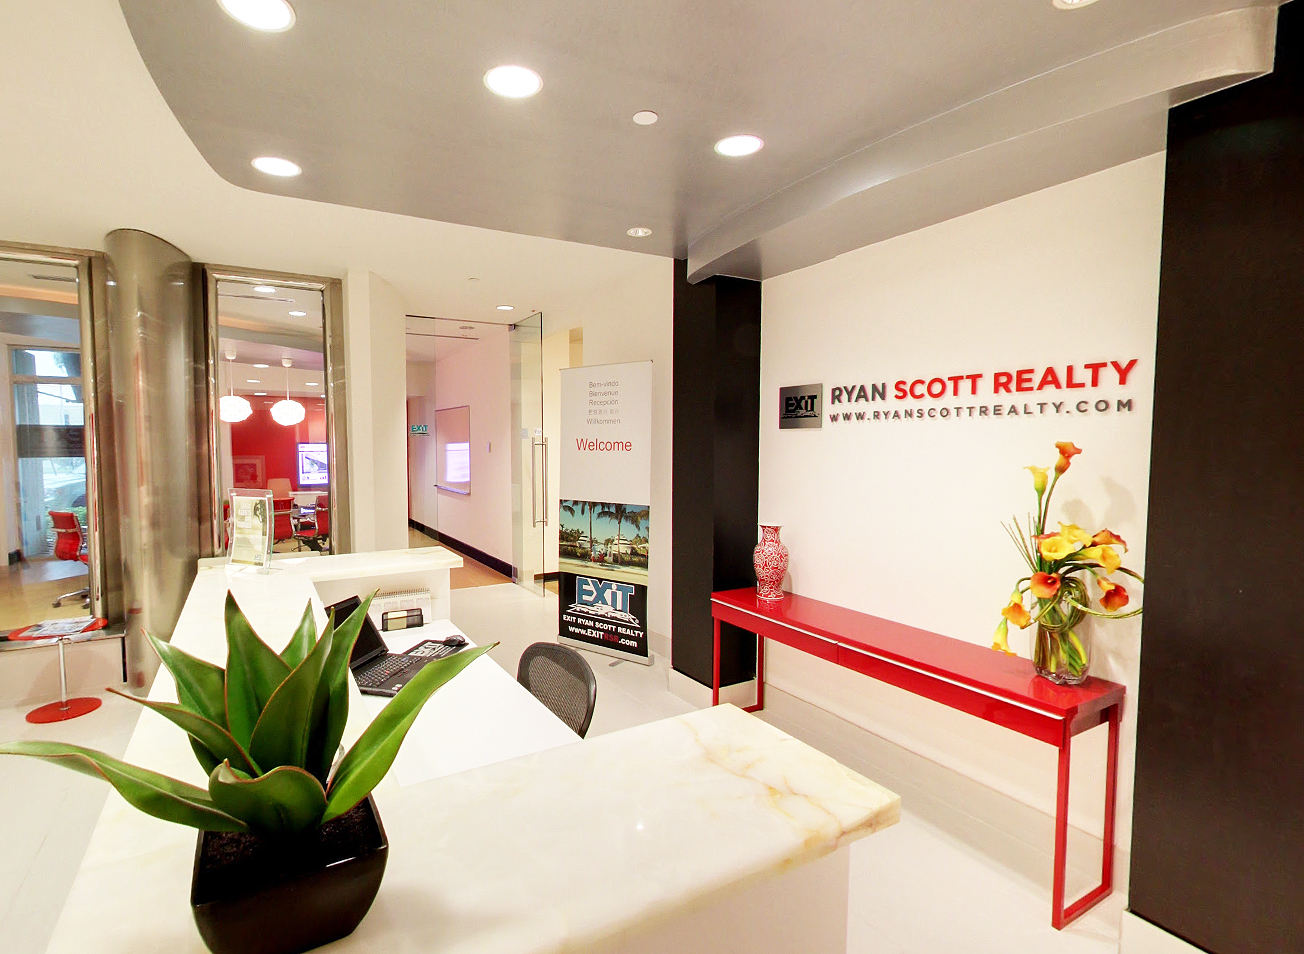 <div>Meet</div> Exit Ryan Scott Realty